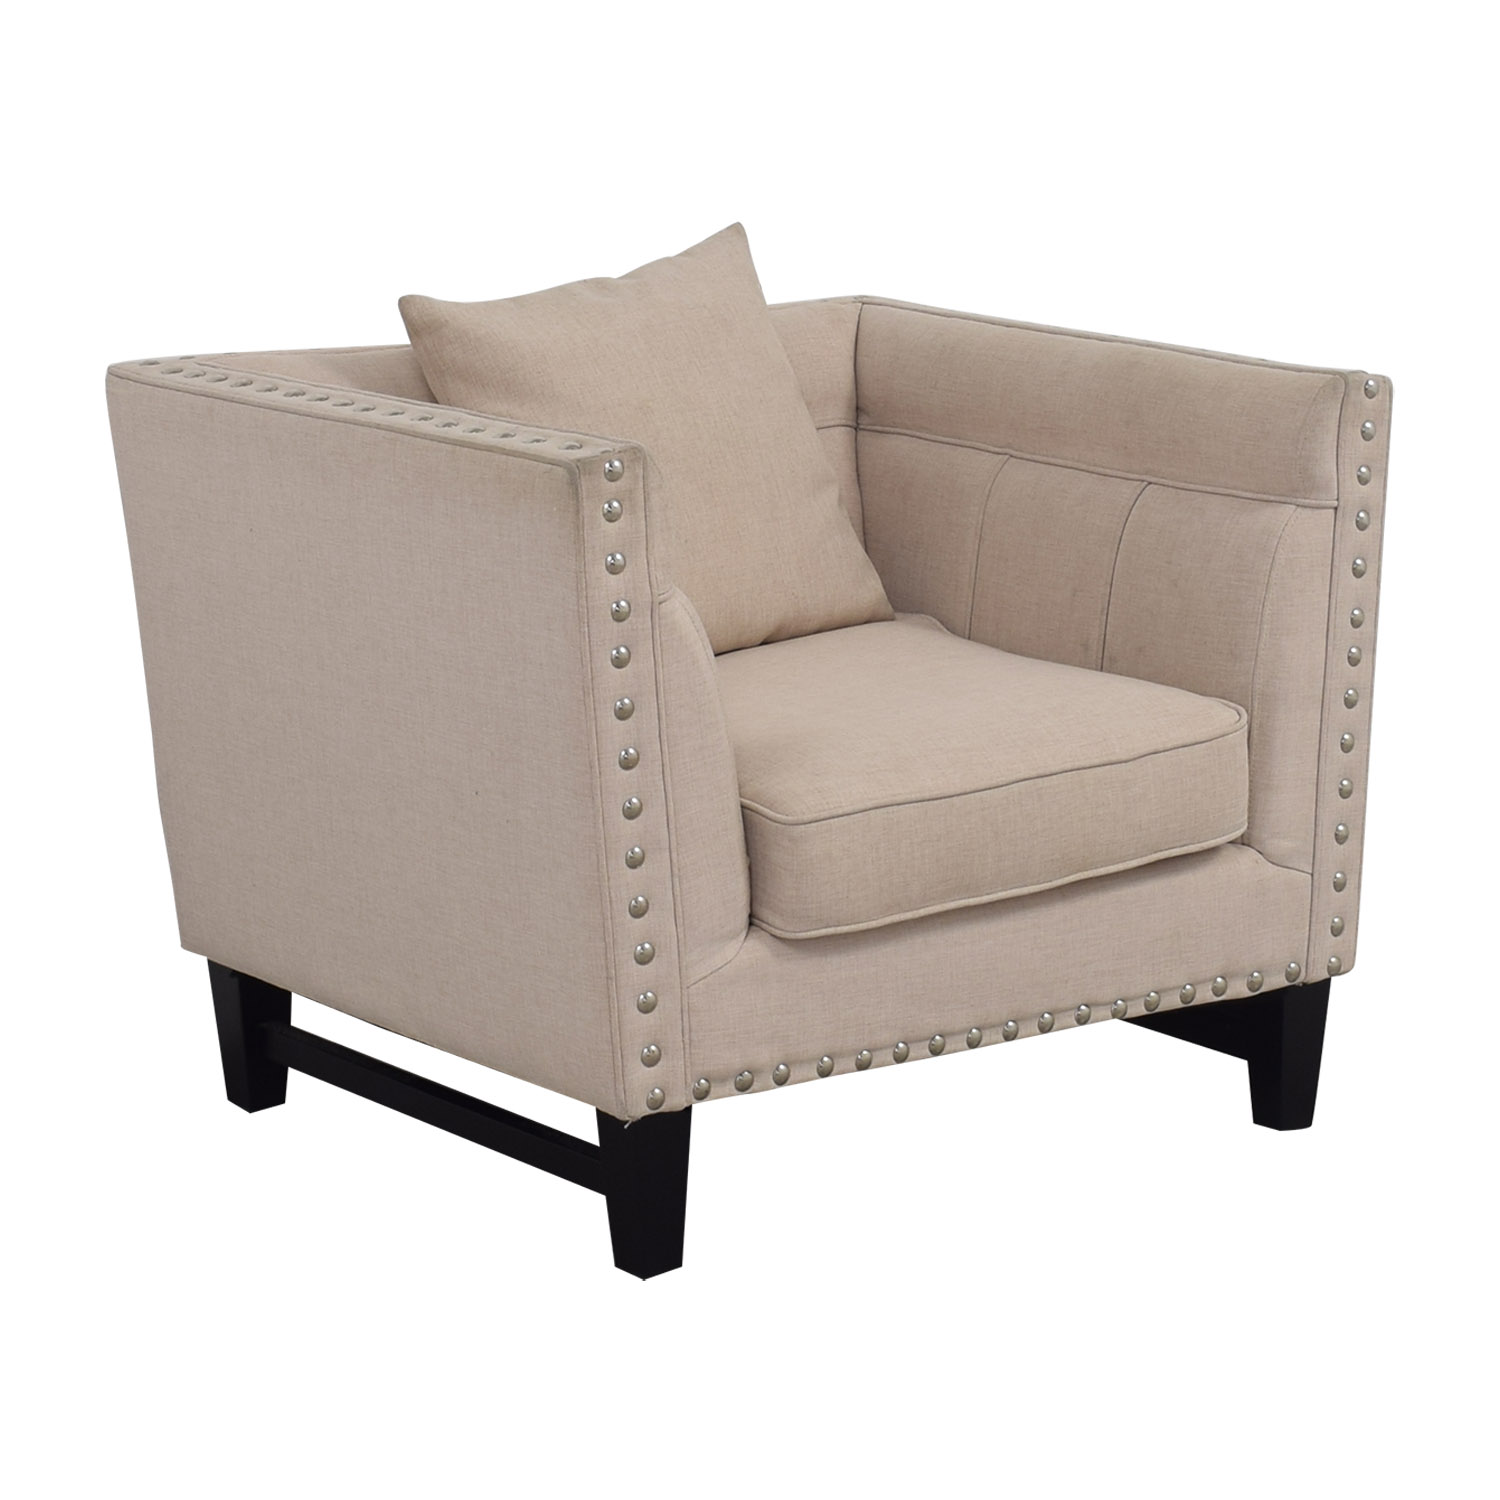 ... House Of Hampton House Of Hampton Beige Nailhead Square Upholstered  Armchair Accent Chairs ...